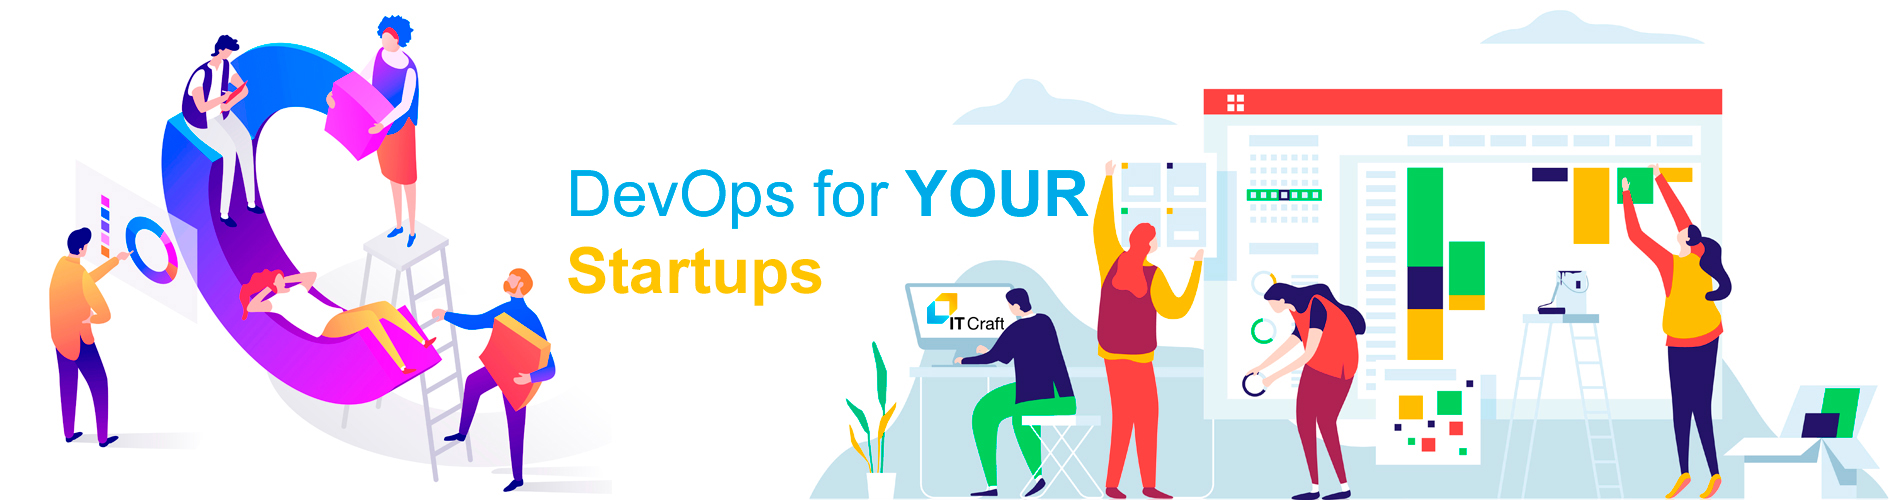 DevOps for Startups